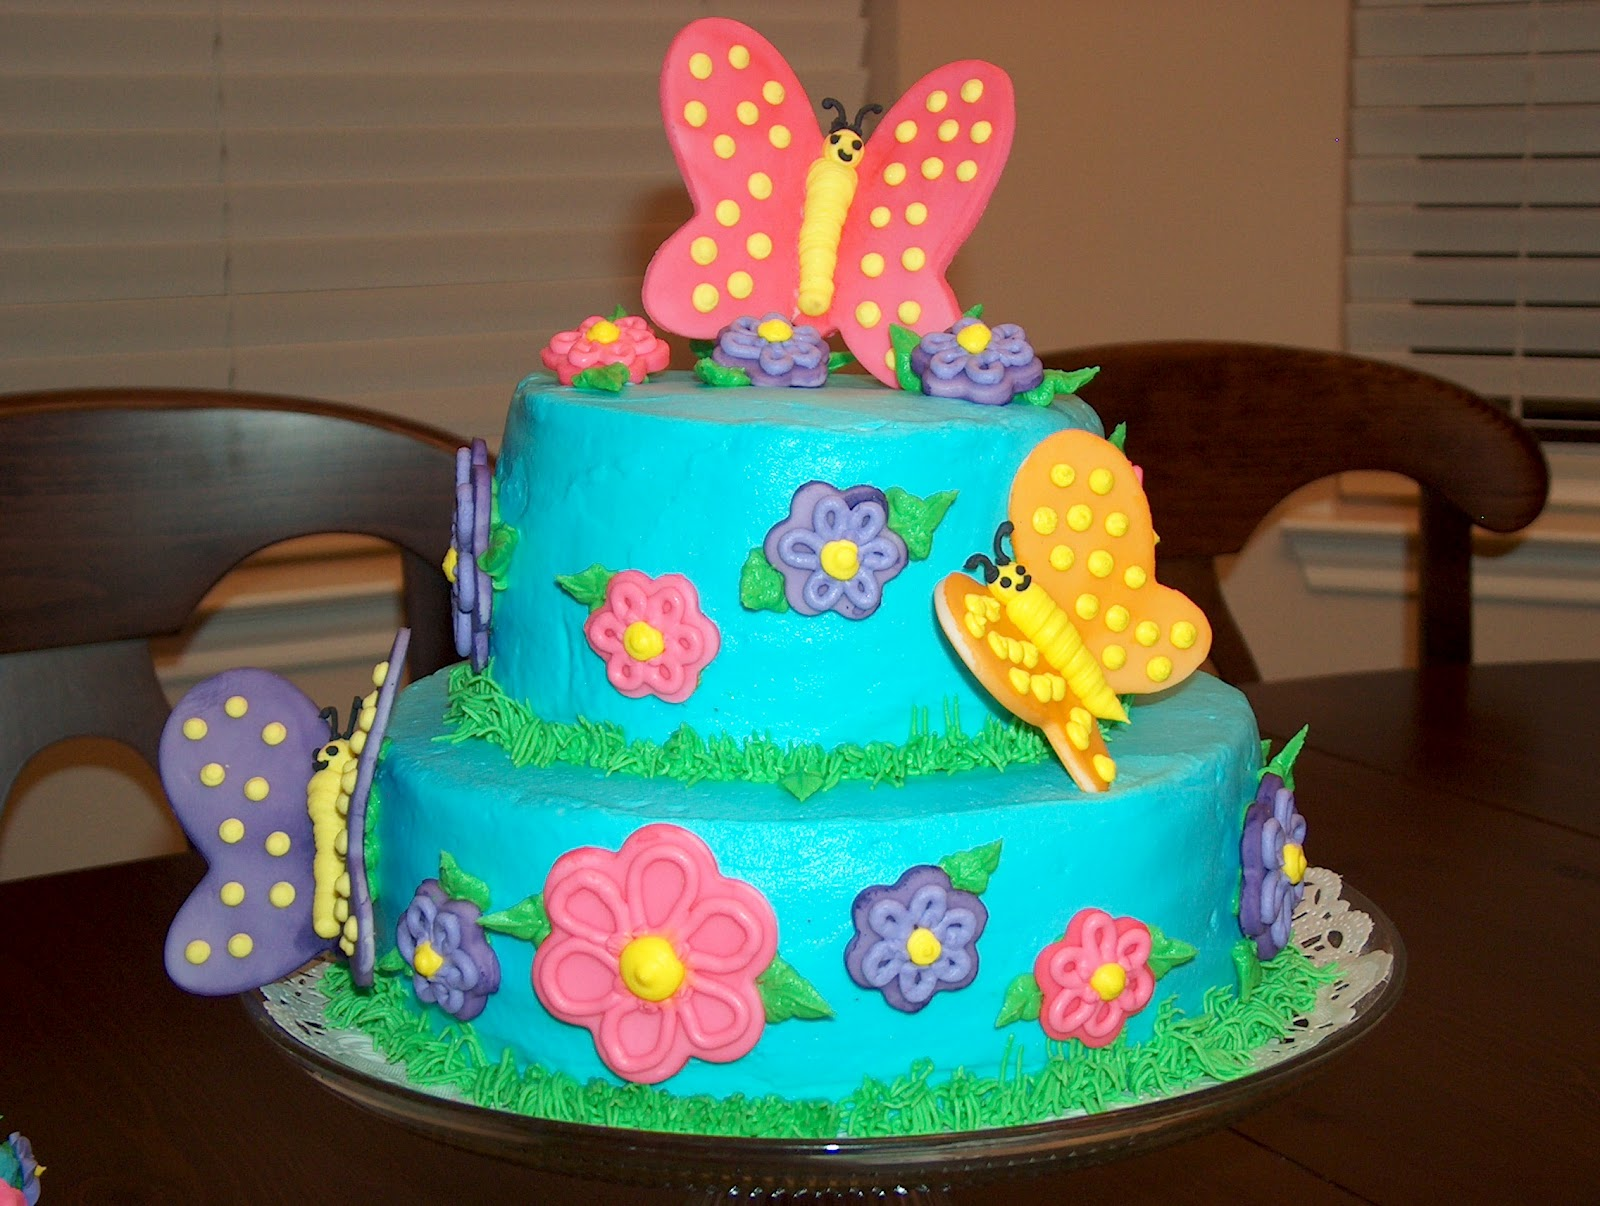 Cake Images In Birthday : Themed Cakes, Birthday Cakes, Wedding Cakes: ButterFly ...